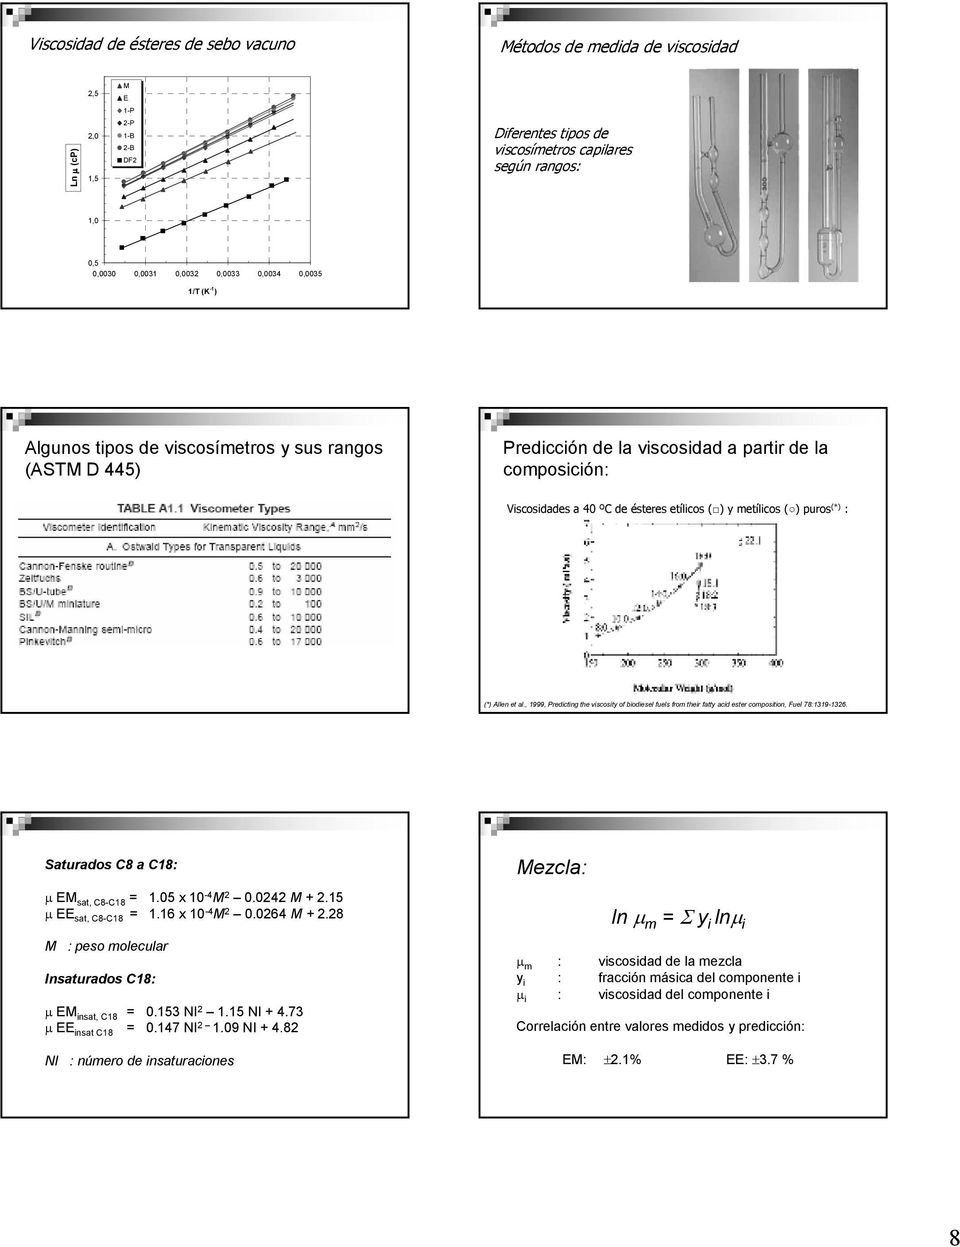 et al., 1999, Predicting the viscosity of biodiesel fuels from their fatty acid estercomposition, Fuel 78:1319-1326. Saturados C8 a C18: Mezcla: µ EM sat, C8-C18 = 1. x -4 M 2.242 M + 2.